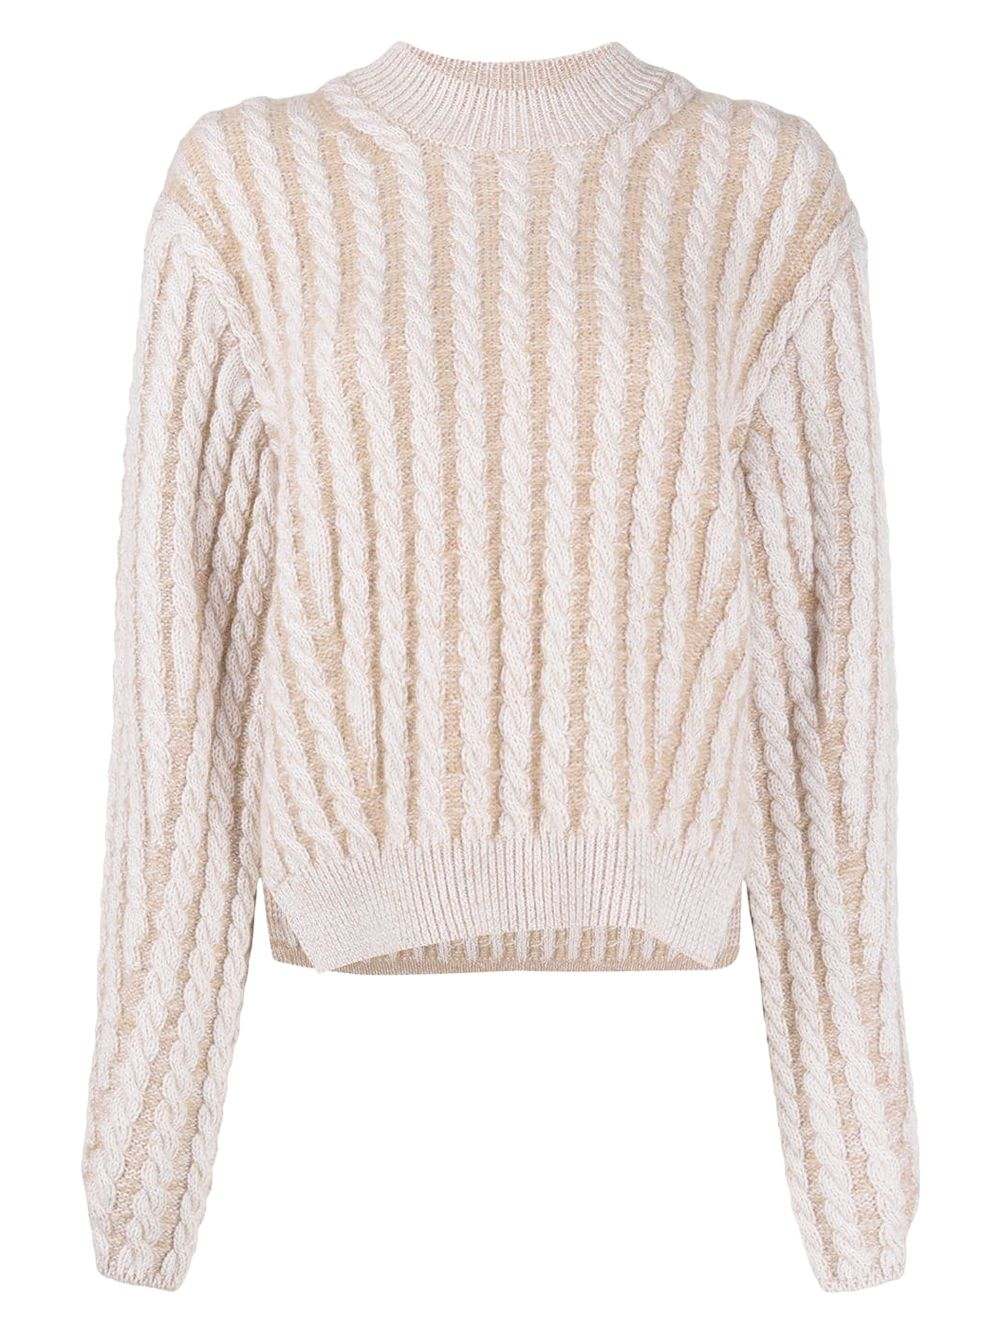 Chloé TWO-TONE CABLE KNIT SWEATER